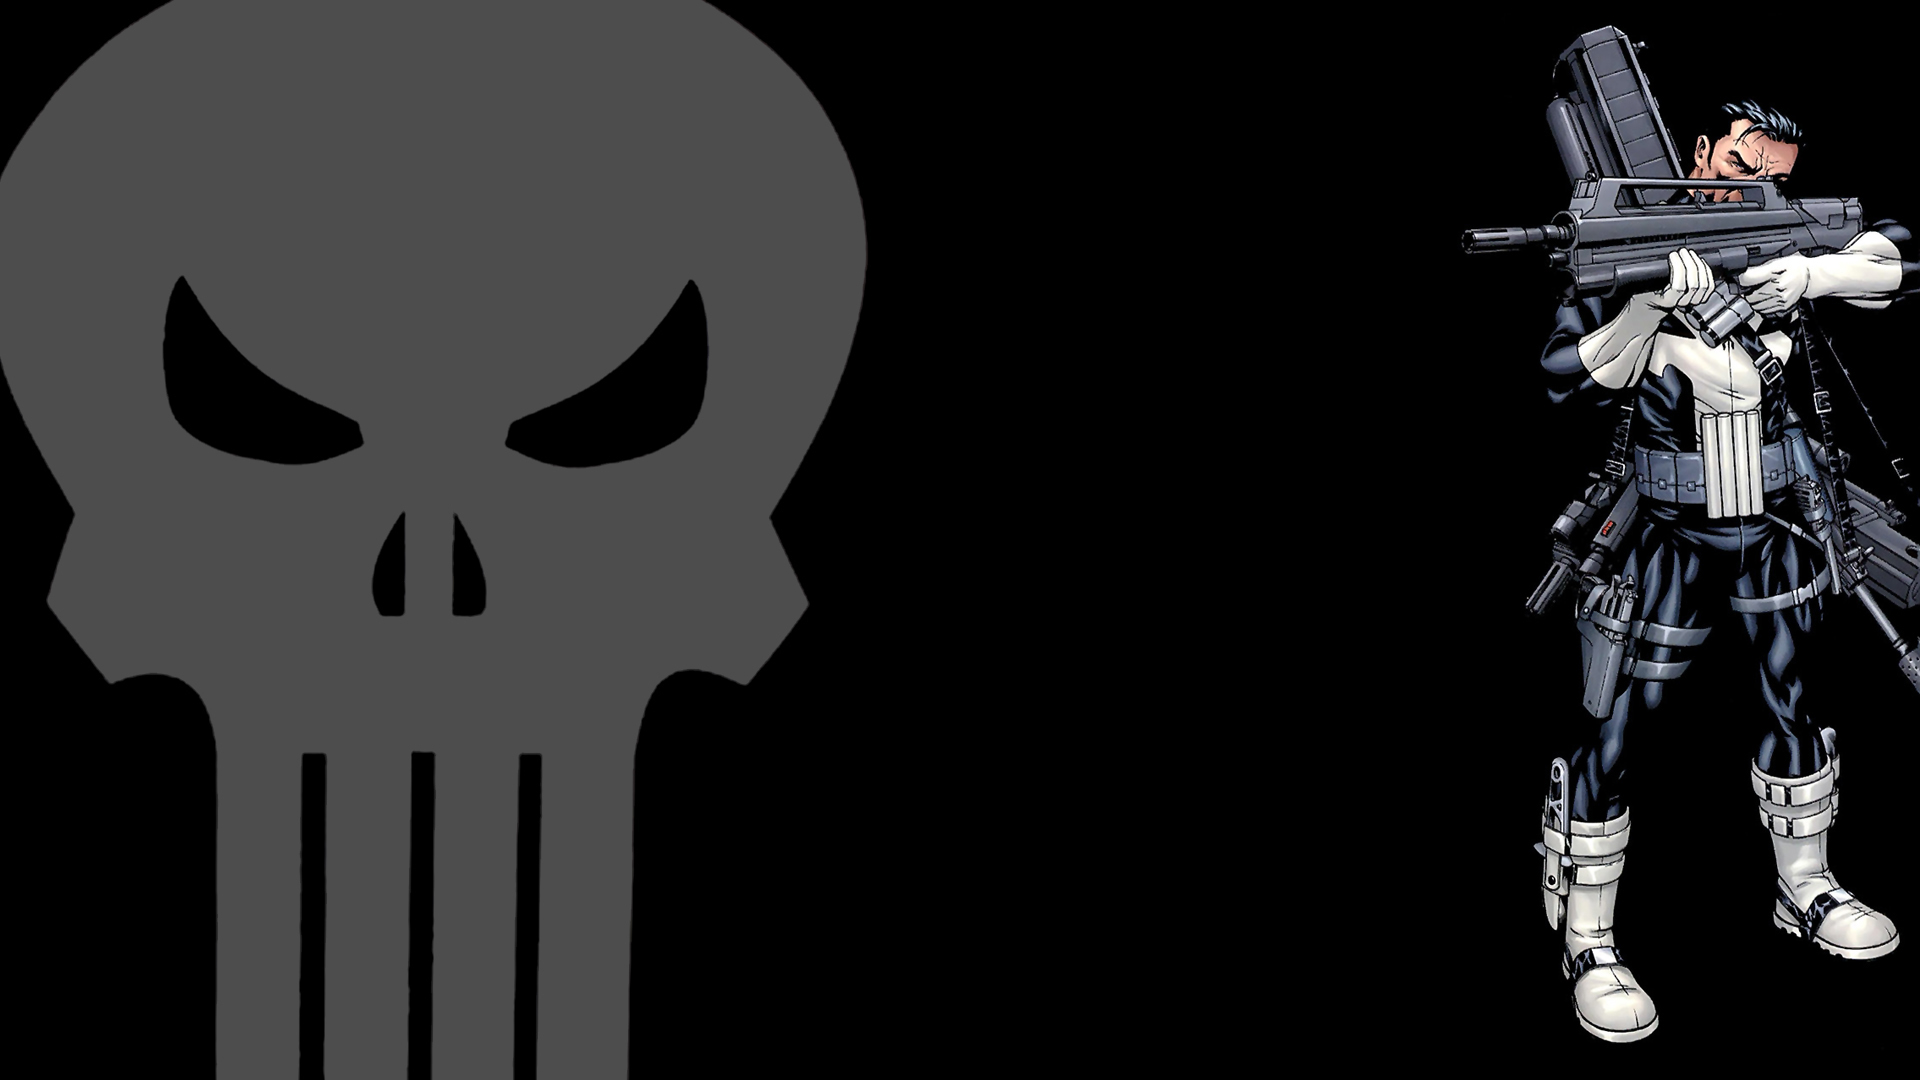 The Punisher Wallpaper 1920x1080 The Punisher Marvel Comics 1920x1080